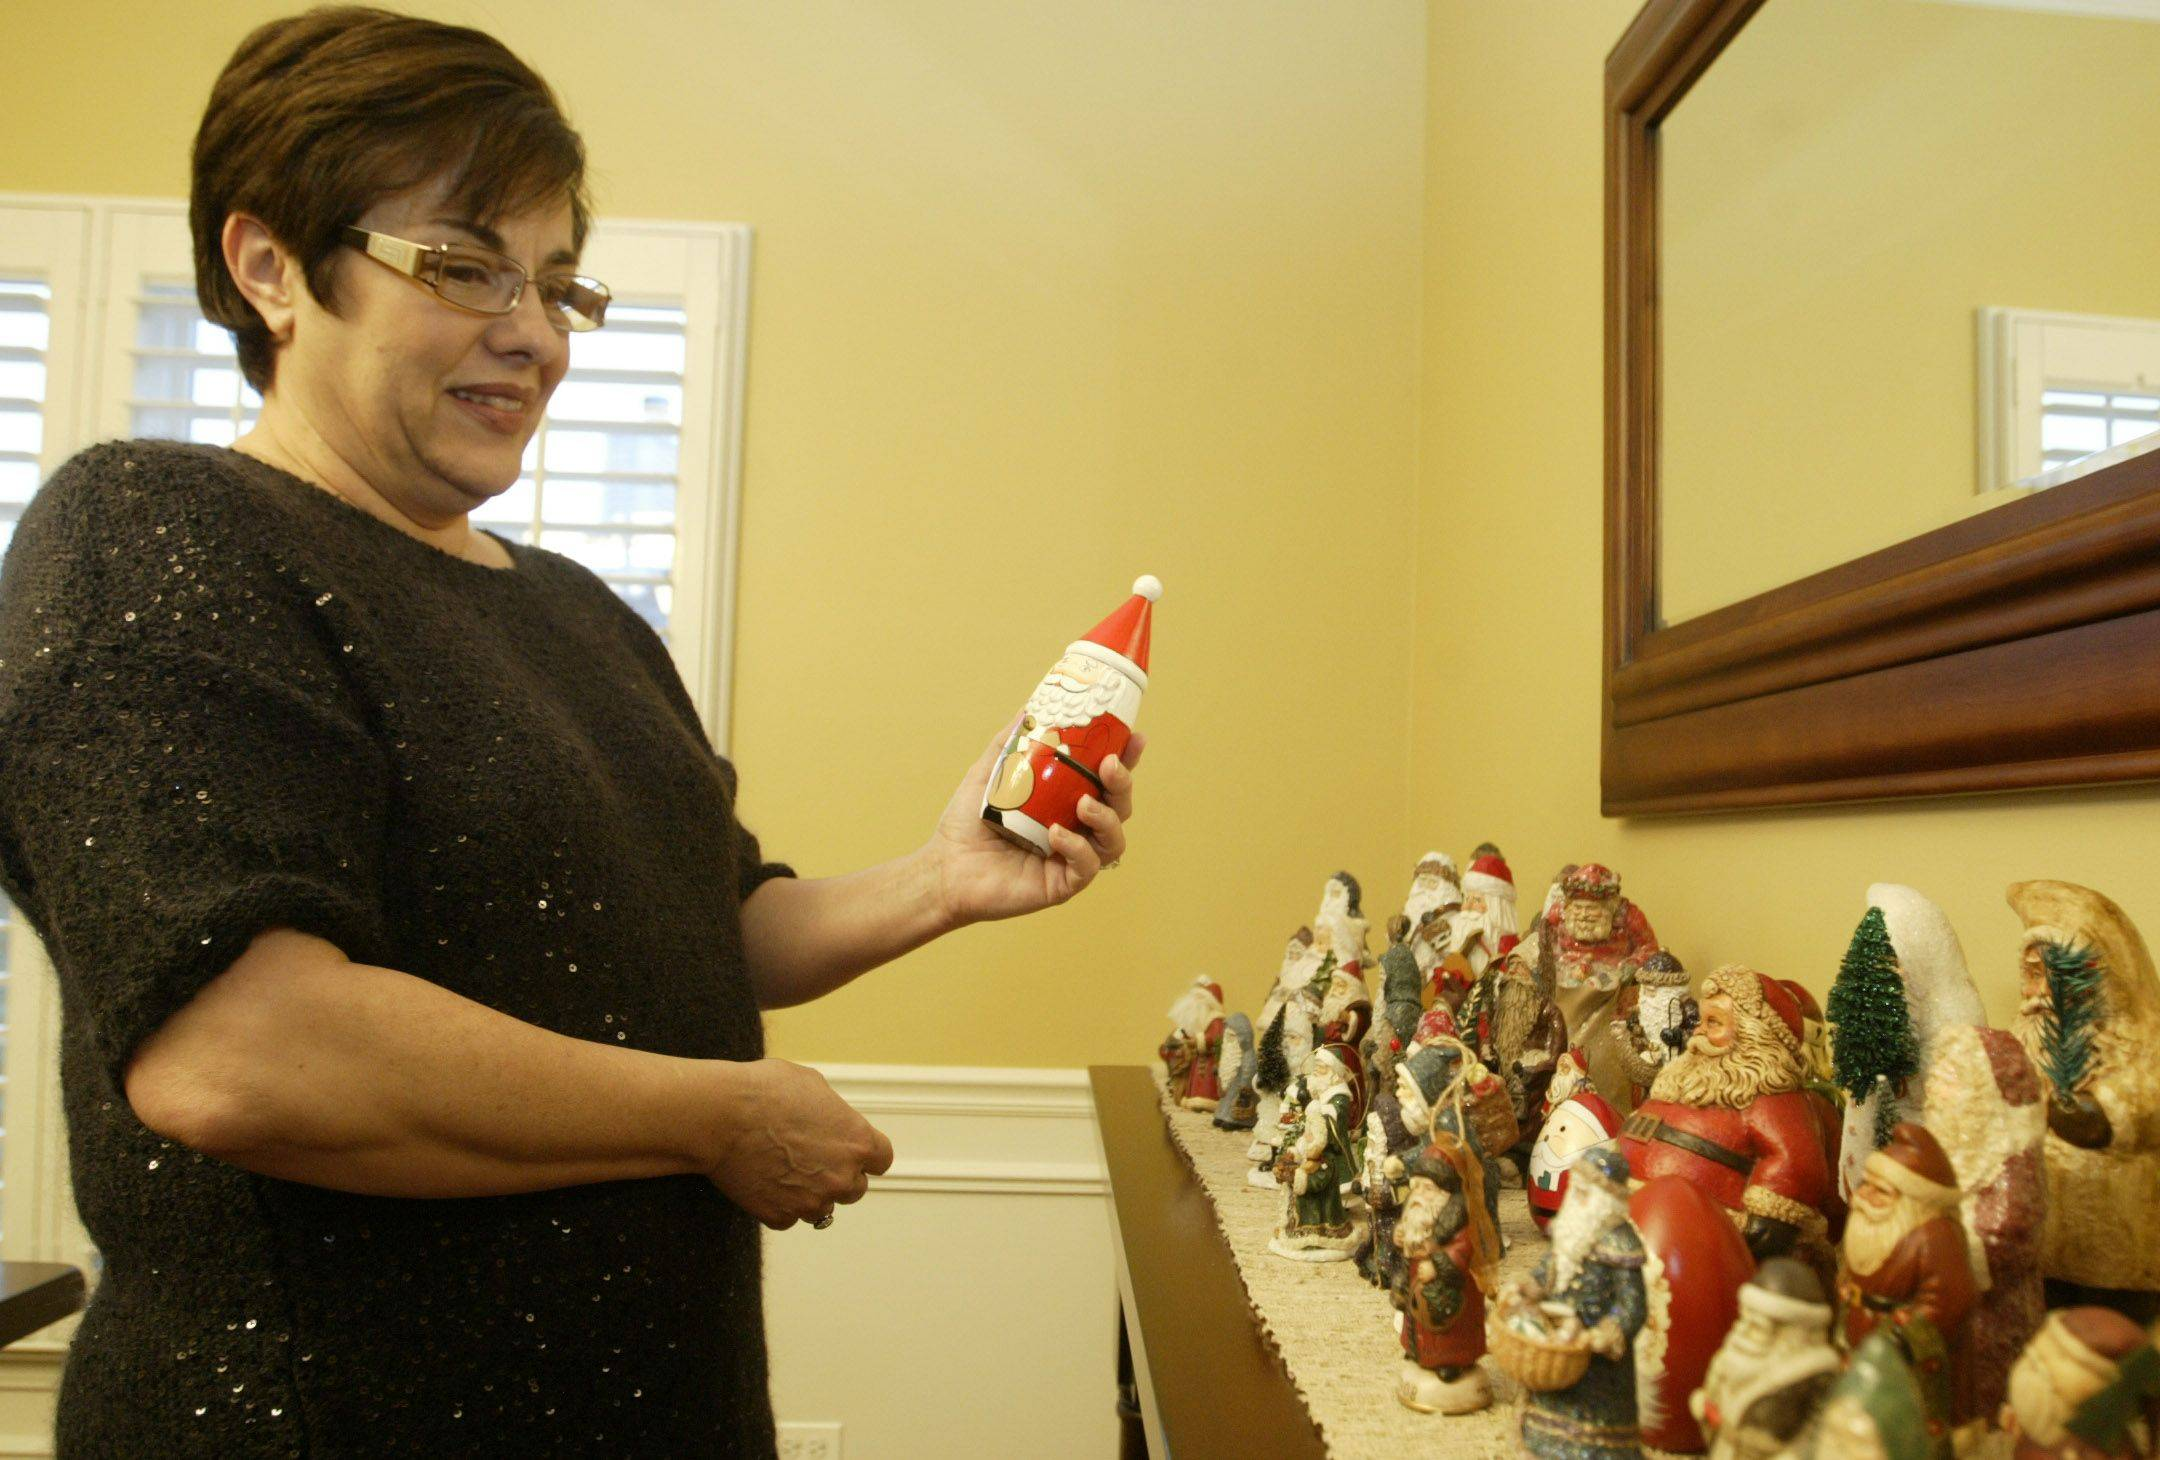 Jan Rohlf has nine Christmas trees and more than 500 ornaments decorating them in her Gilberts home. It takes her three full days to set up her different themed trees, which include a Santa tree, an old-fashioned tree, and figurine tree. Then for six to seven weeks, she sits back and enjoys the display until packing everything up until next year.